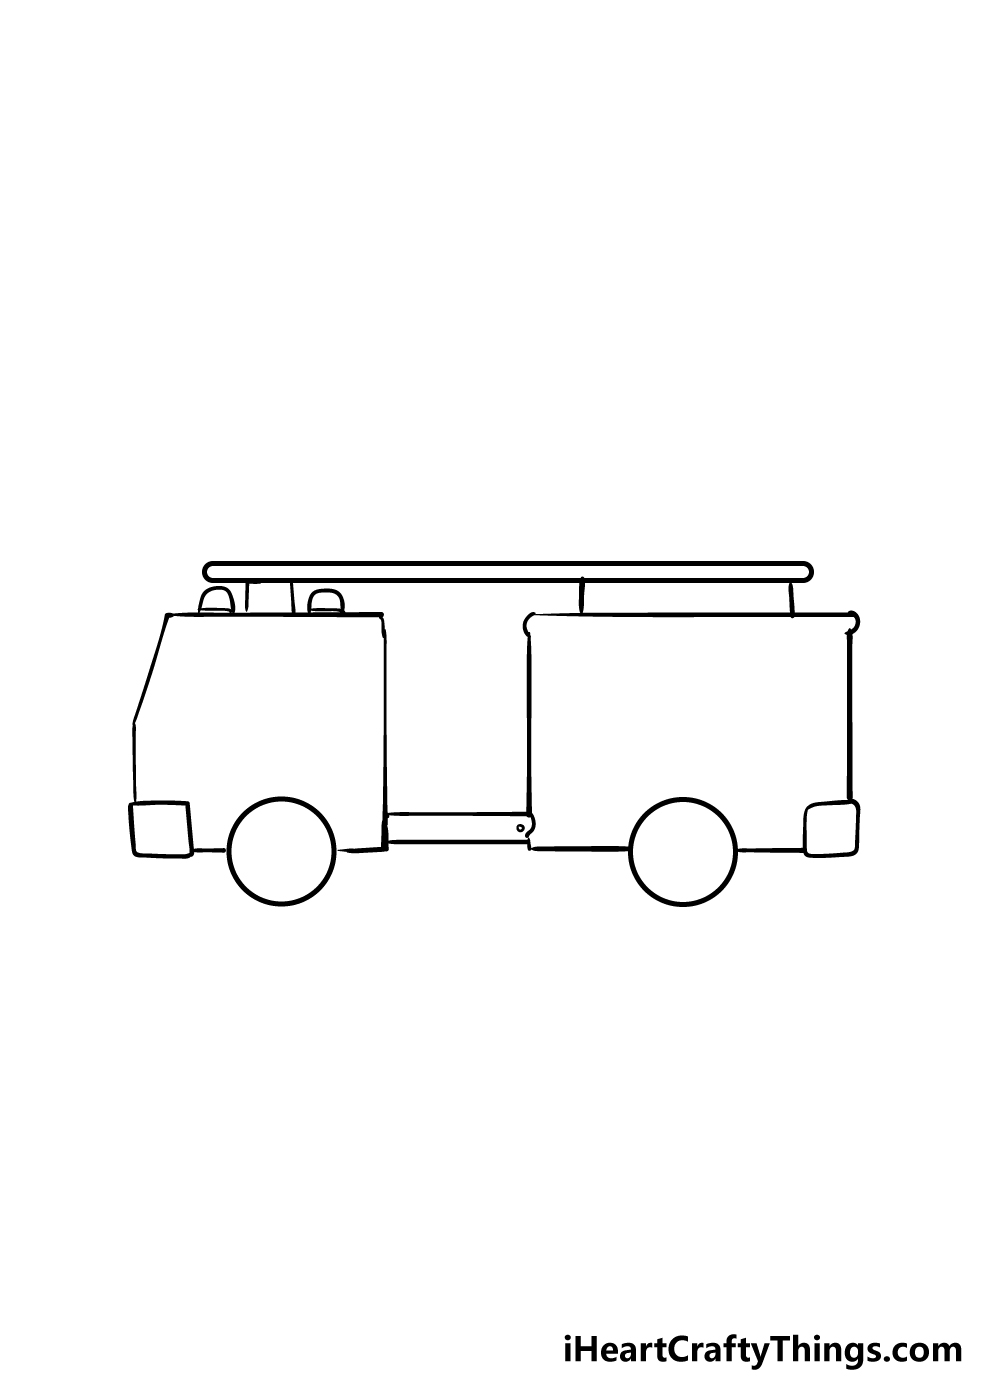 fire truck drawing step 2